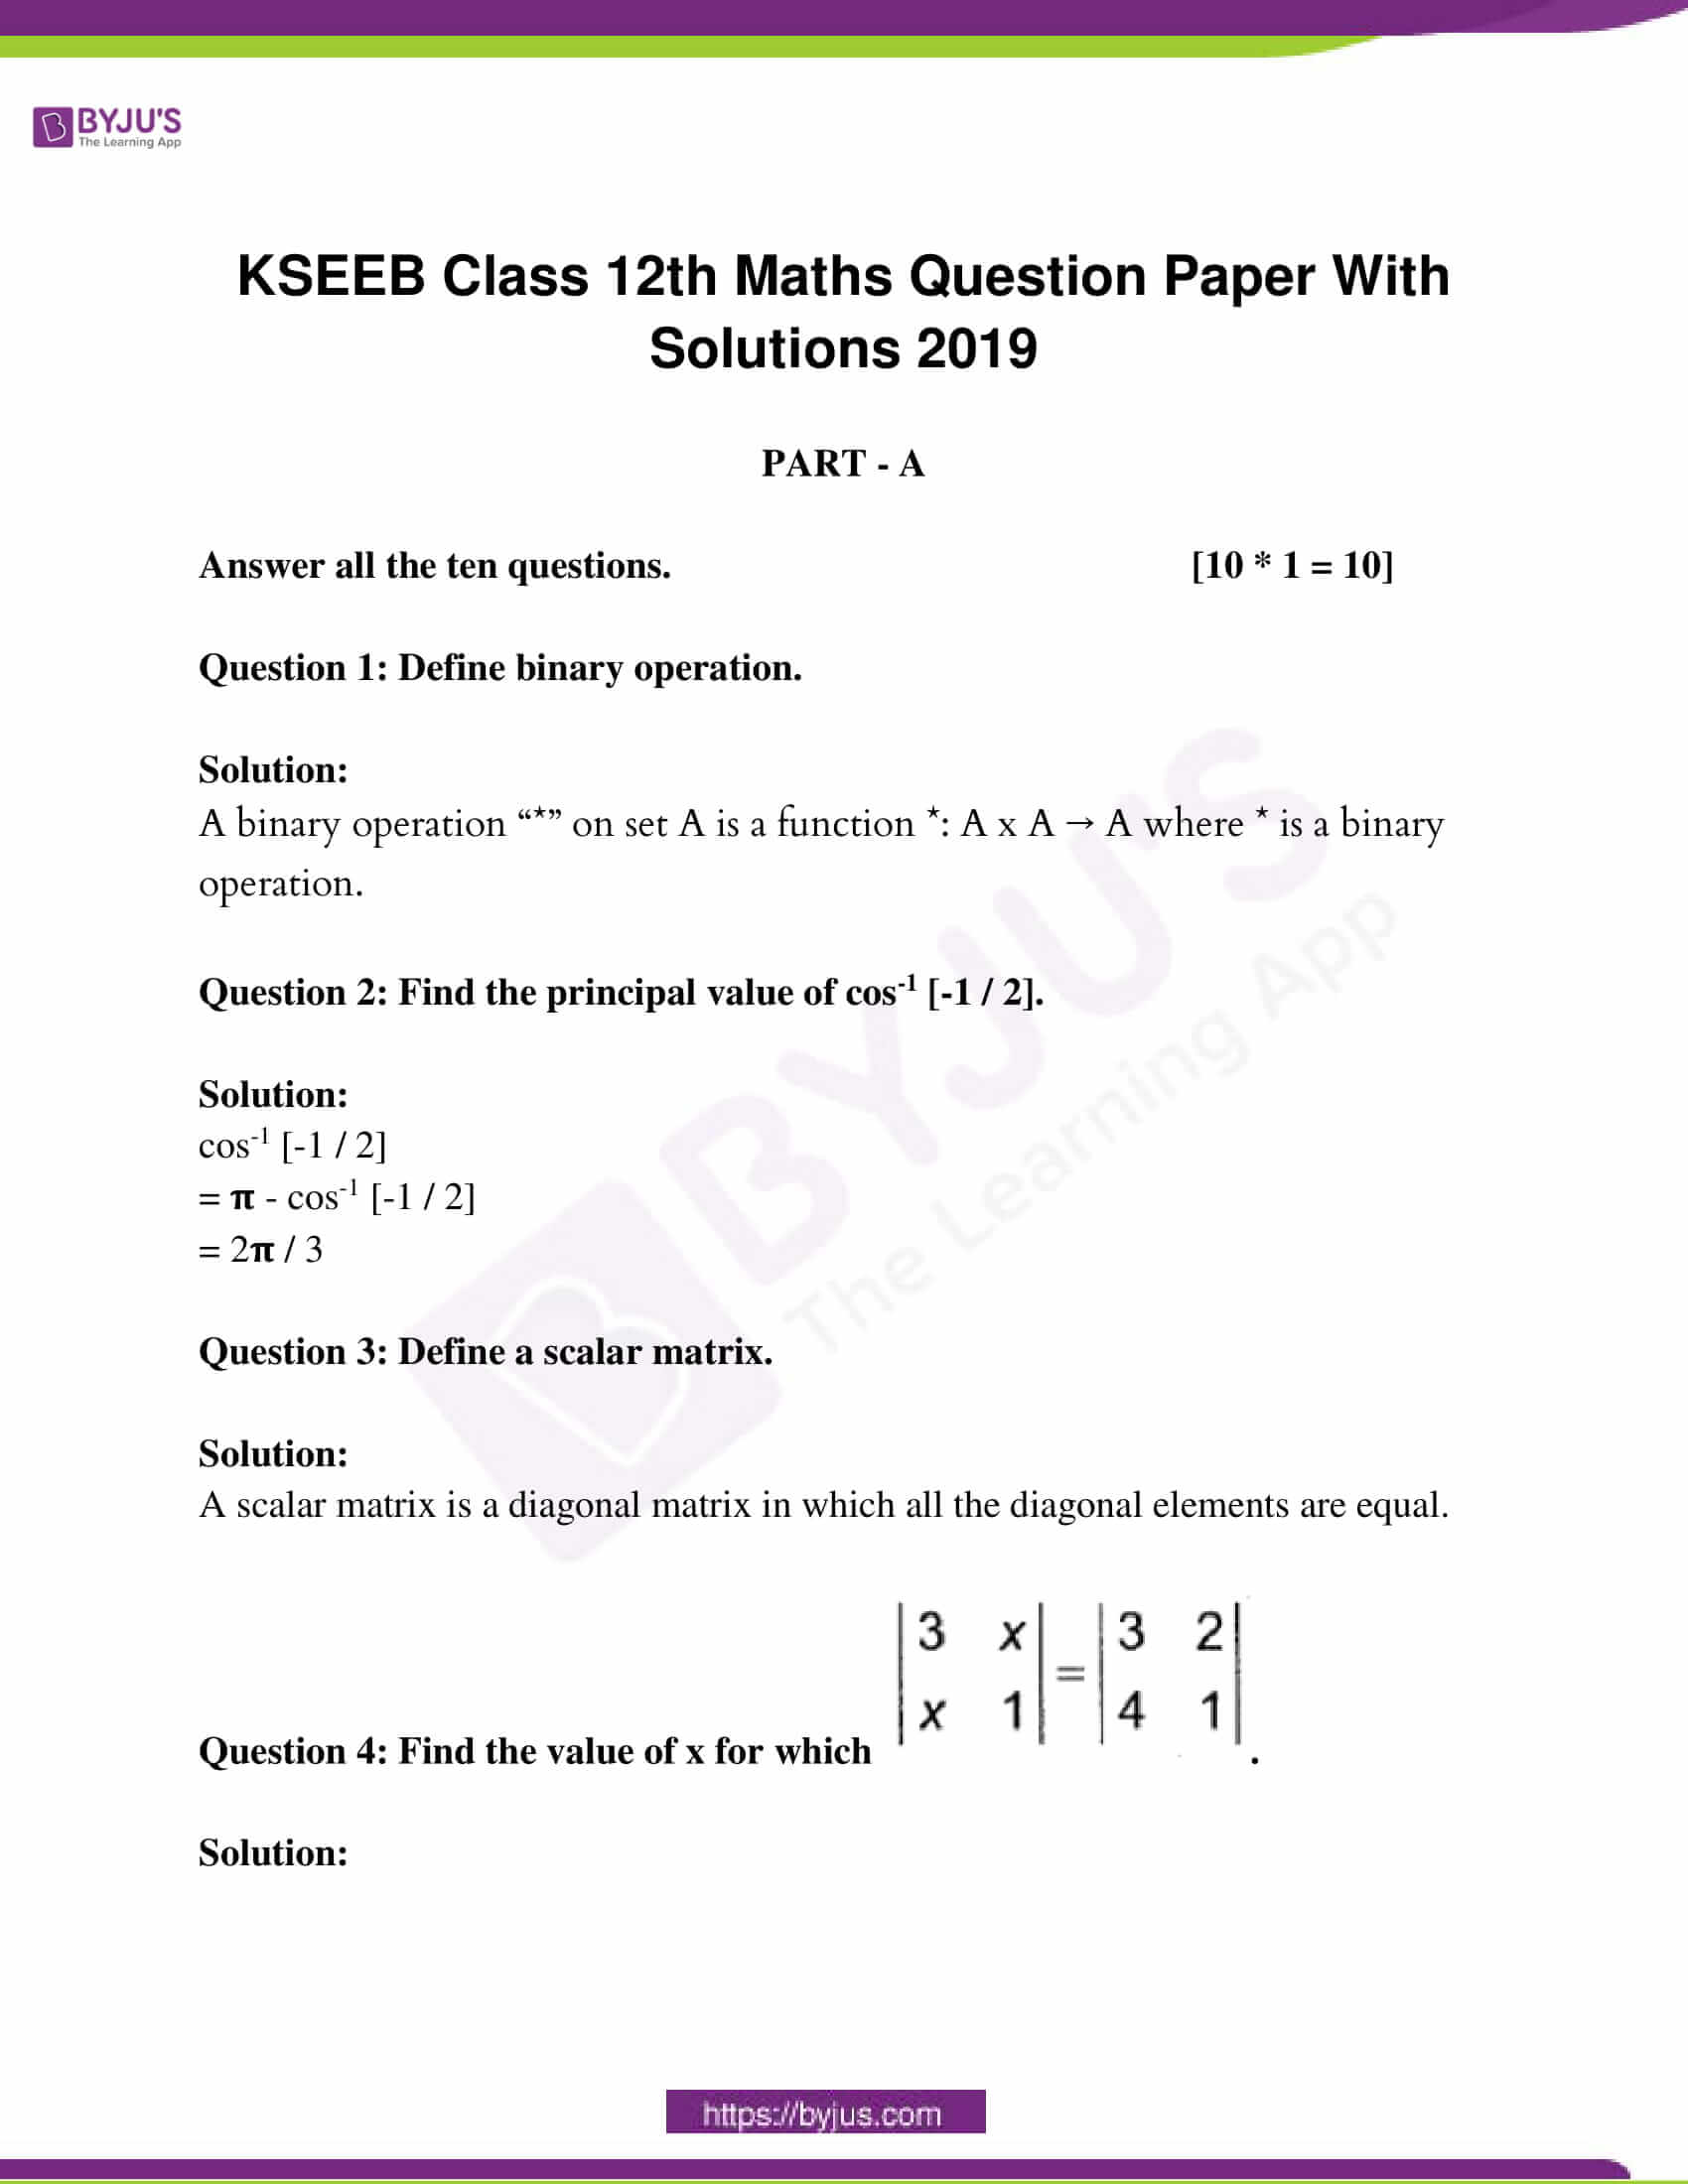 kseeb class 12 exam question paper solutions march 2019 01